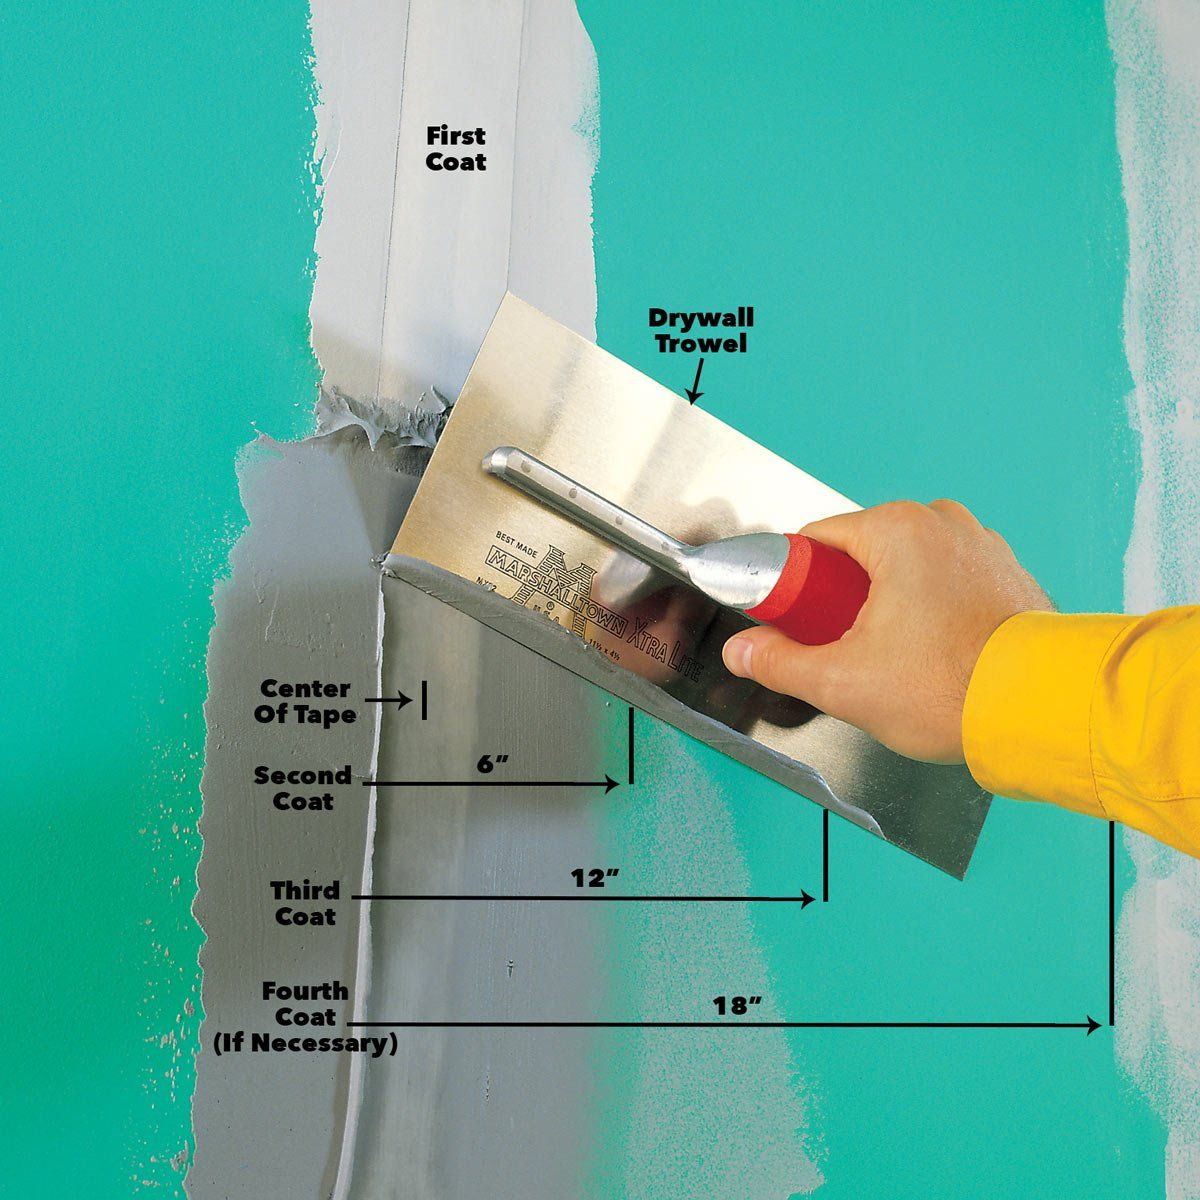 Expert Tips for Finishing Drywall Drywall finishing